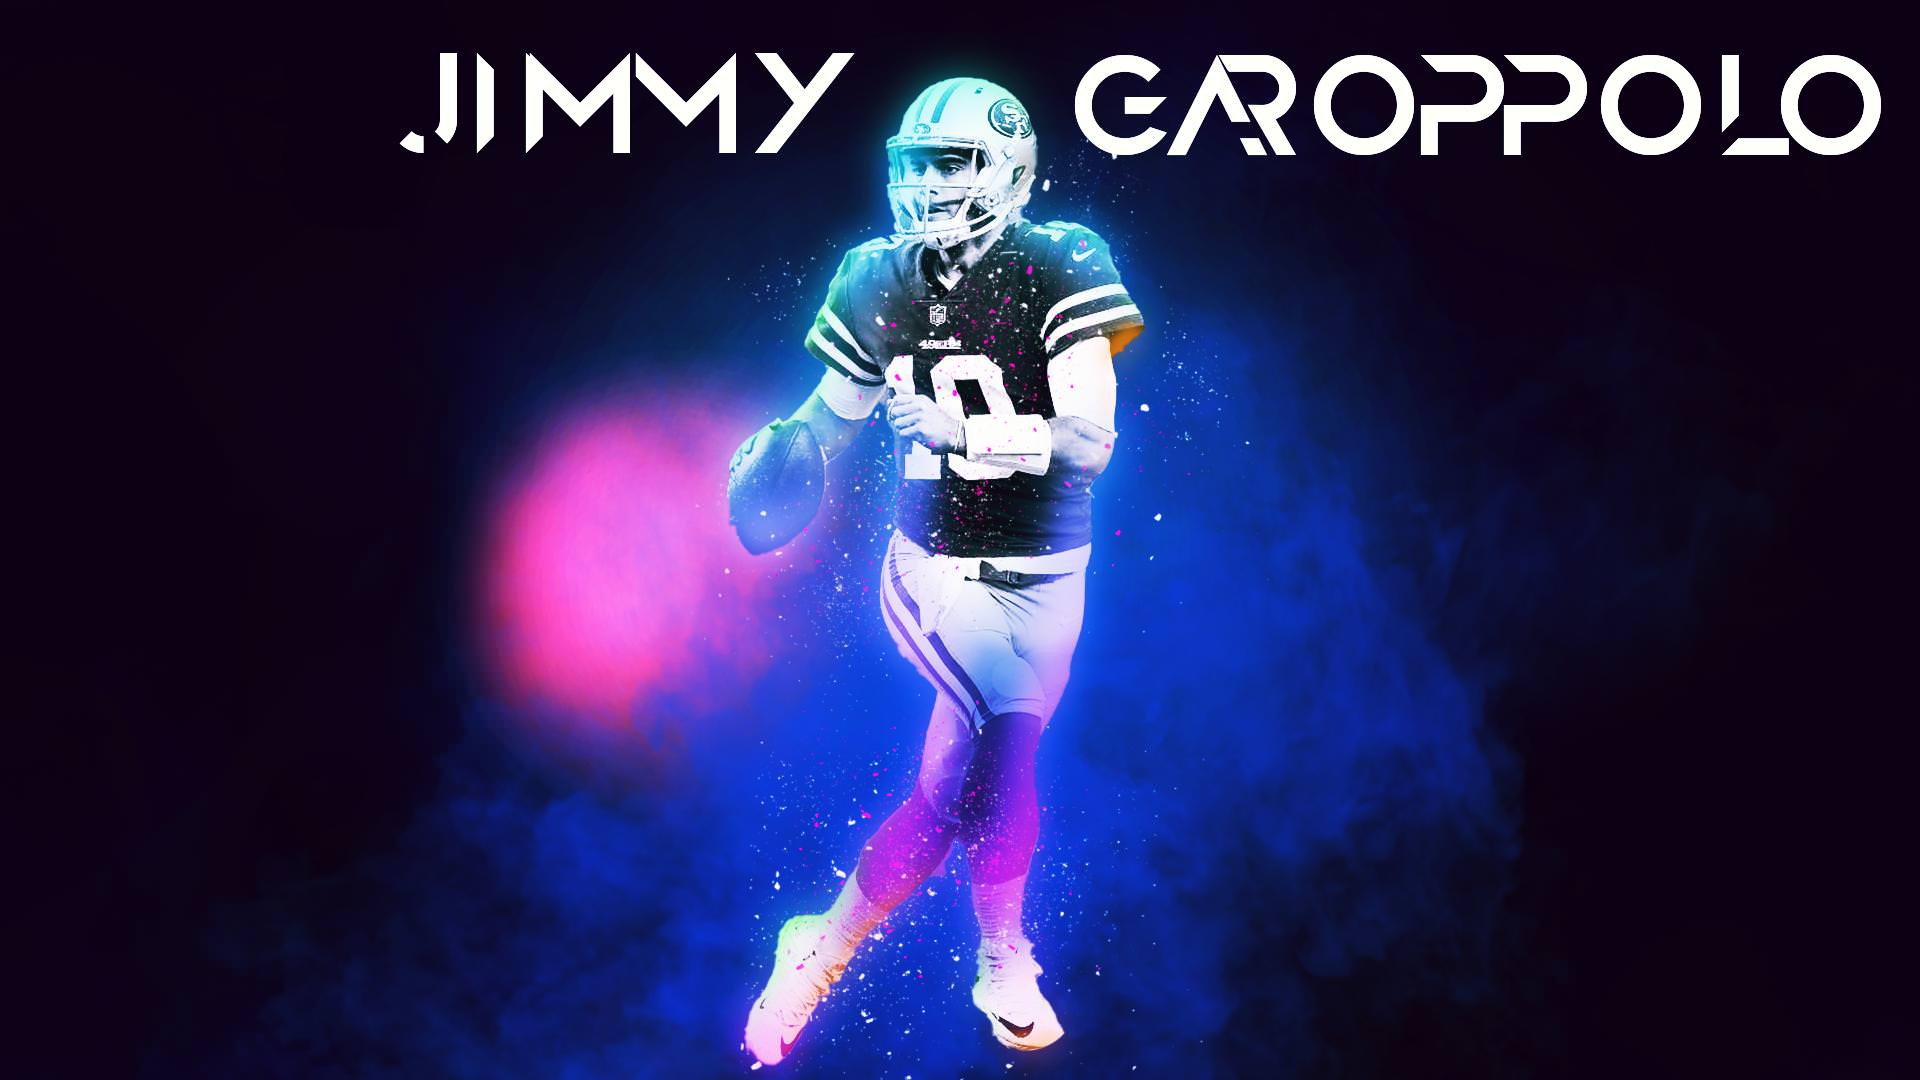 JJ Watt Jimmy Garoppolo Dez Bryant Wallpaper   Graphics 1920x1080